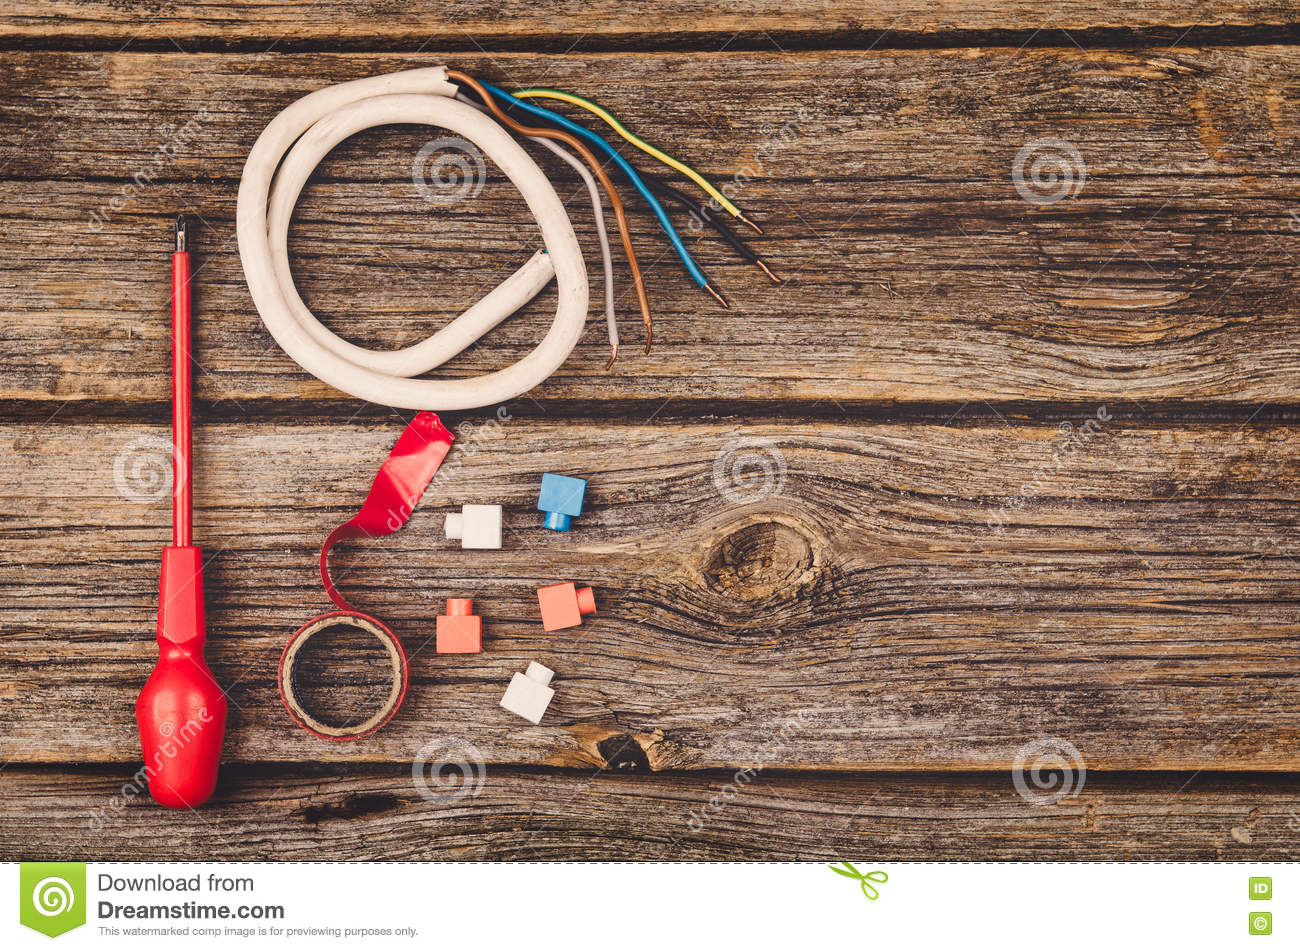 Instruments In Electrical Construction : The electrical construction tools vector illustration